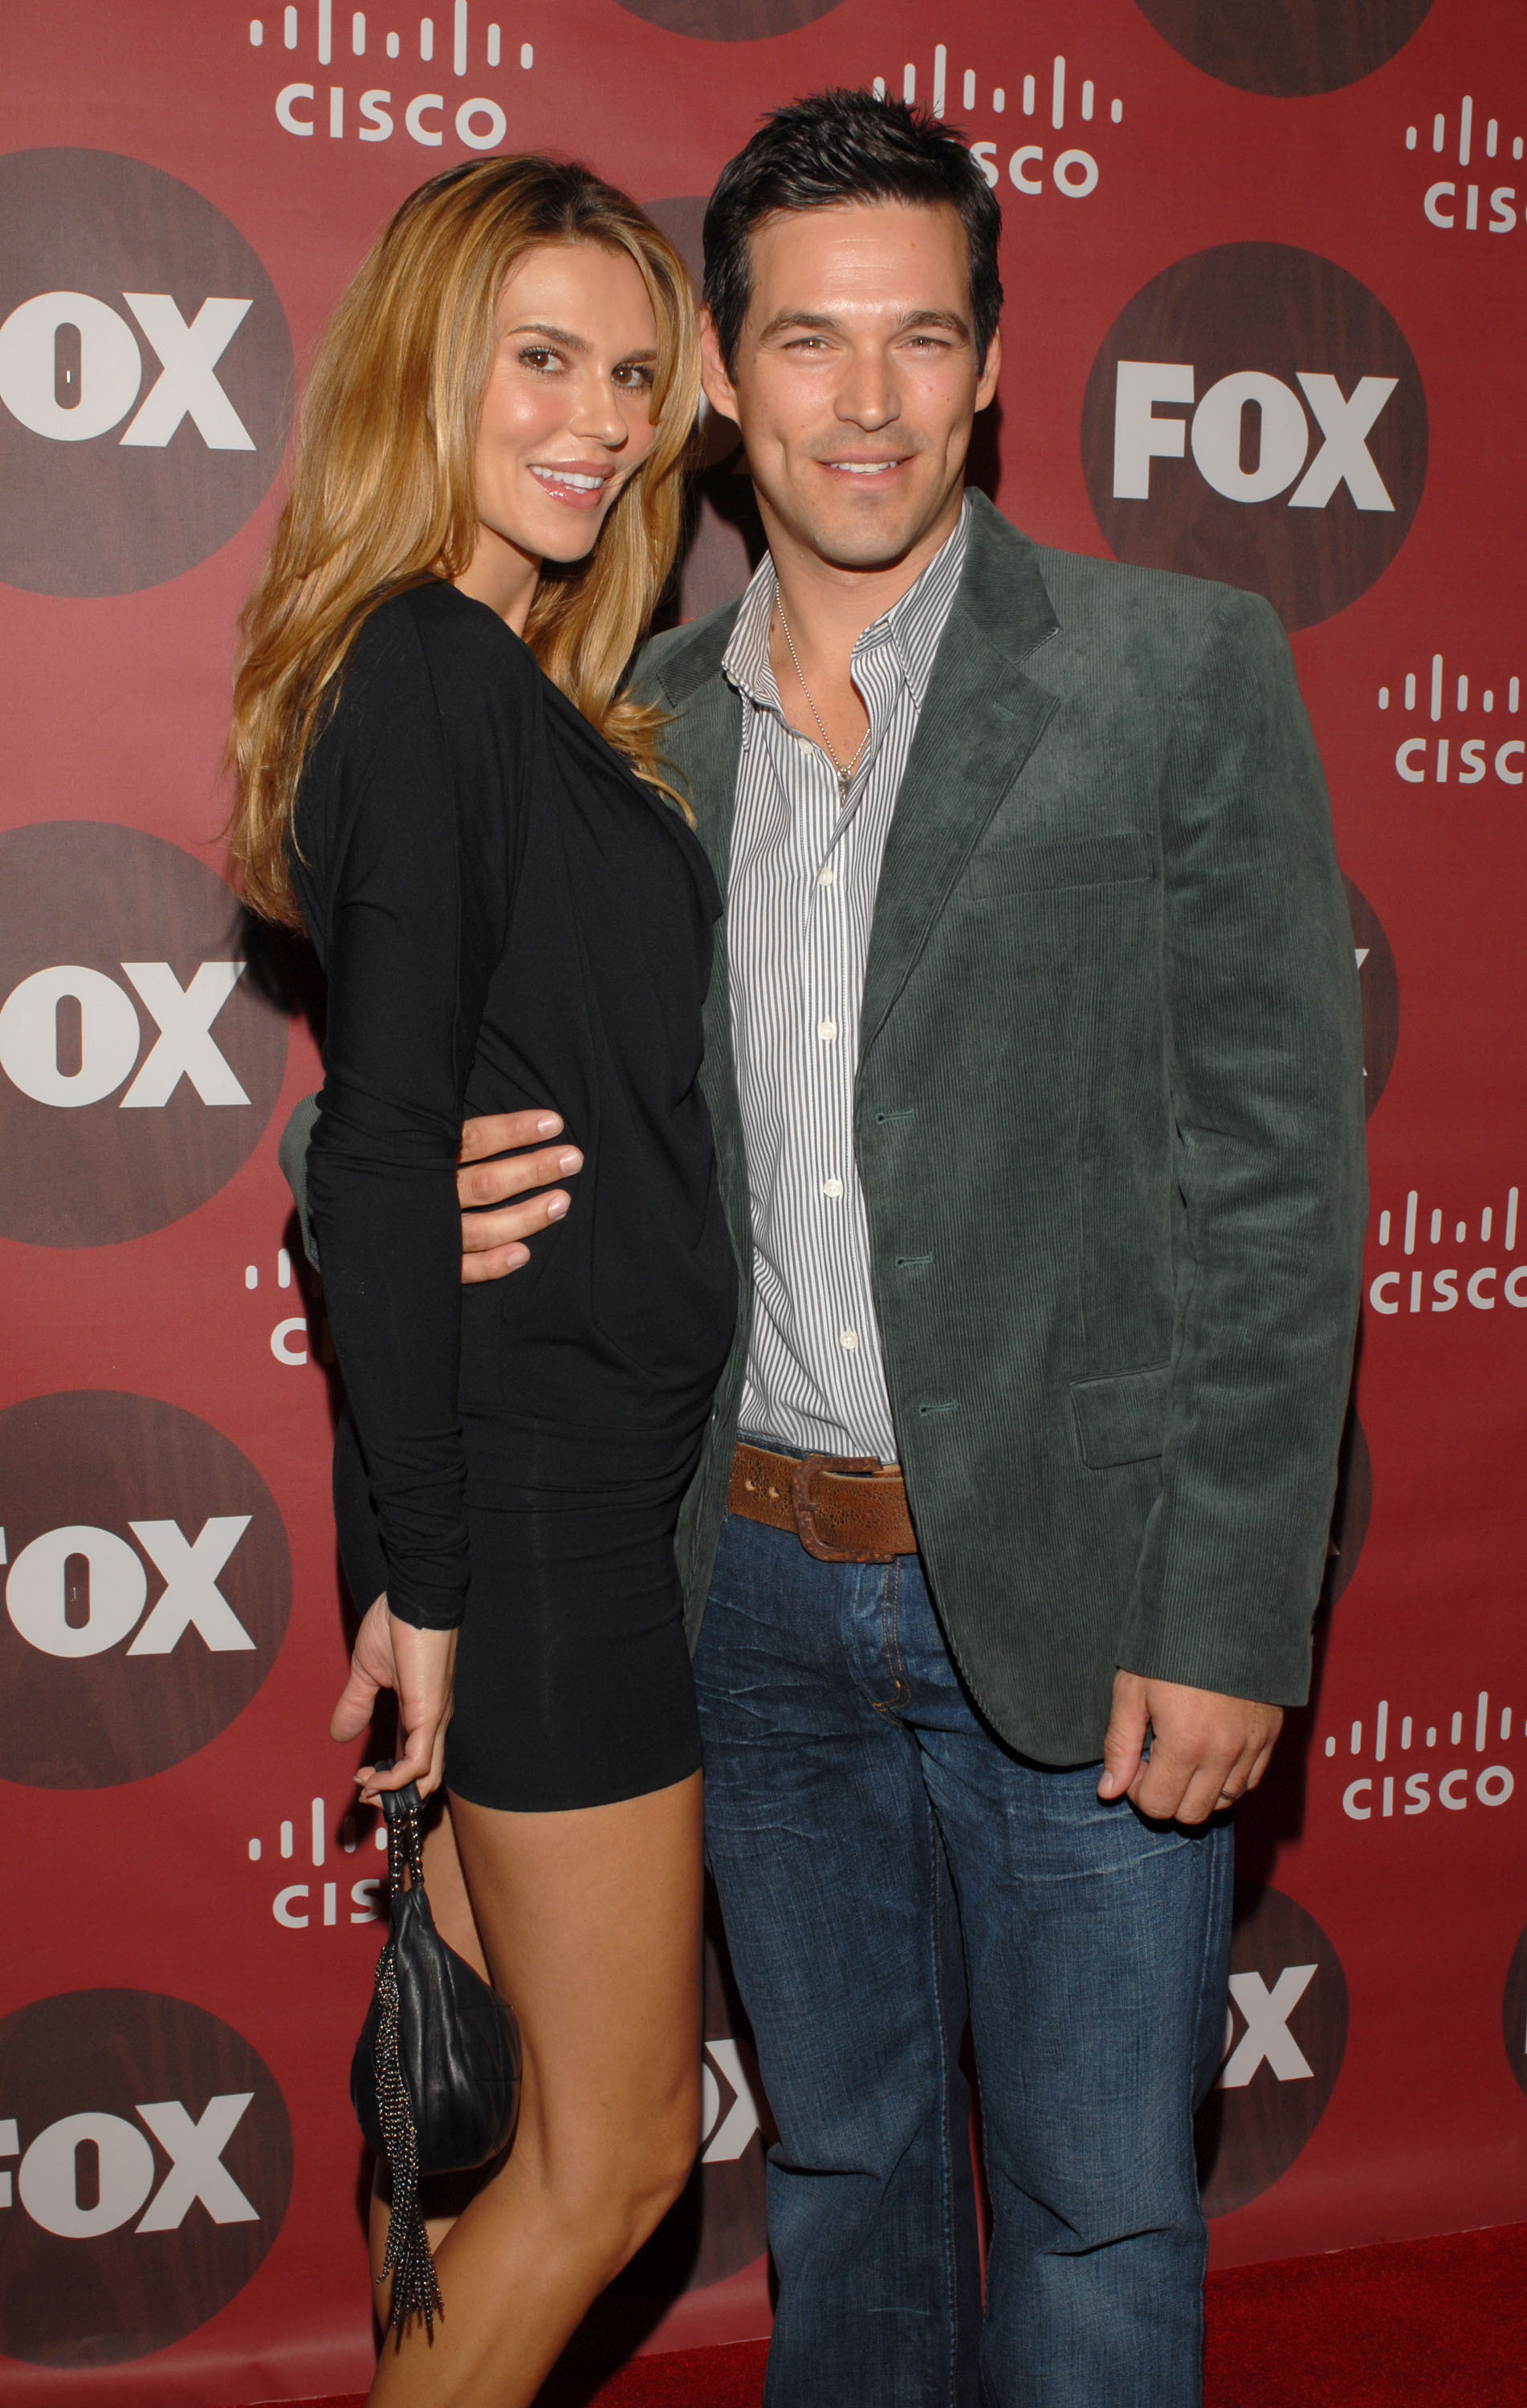 Brandi Glanville and Eddie Cibrian attend an event for Fox in Los Angeles on Oct. 23, 2006.